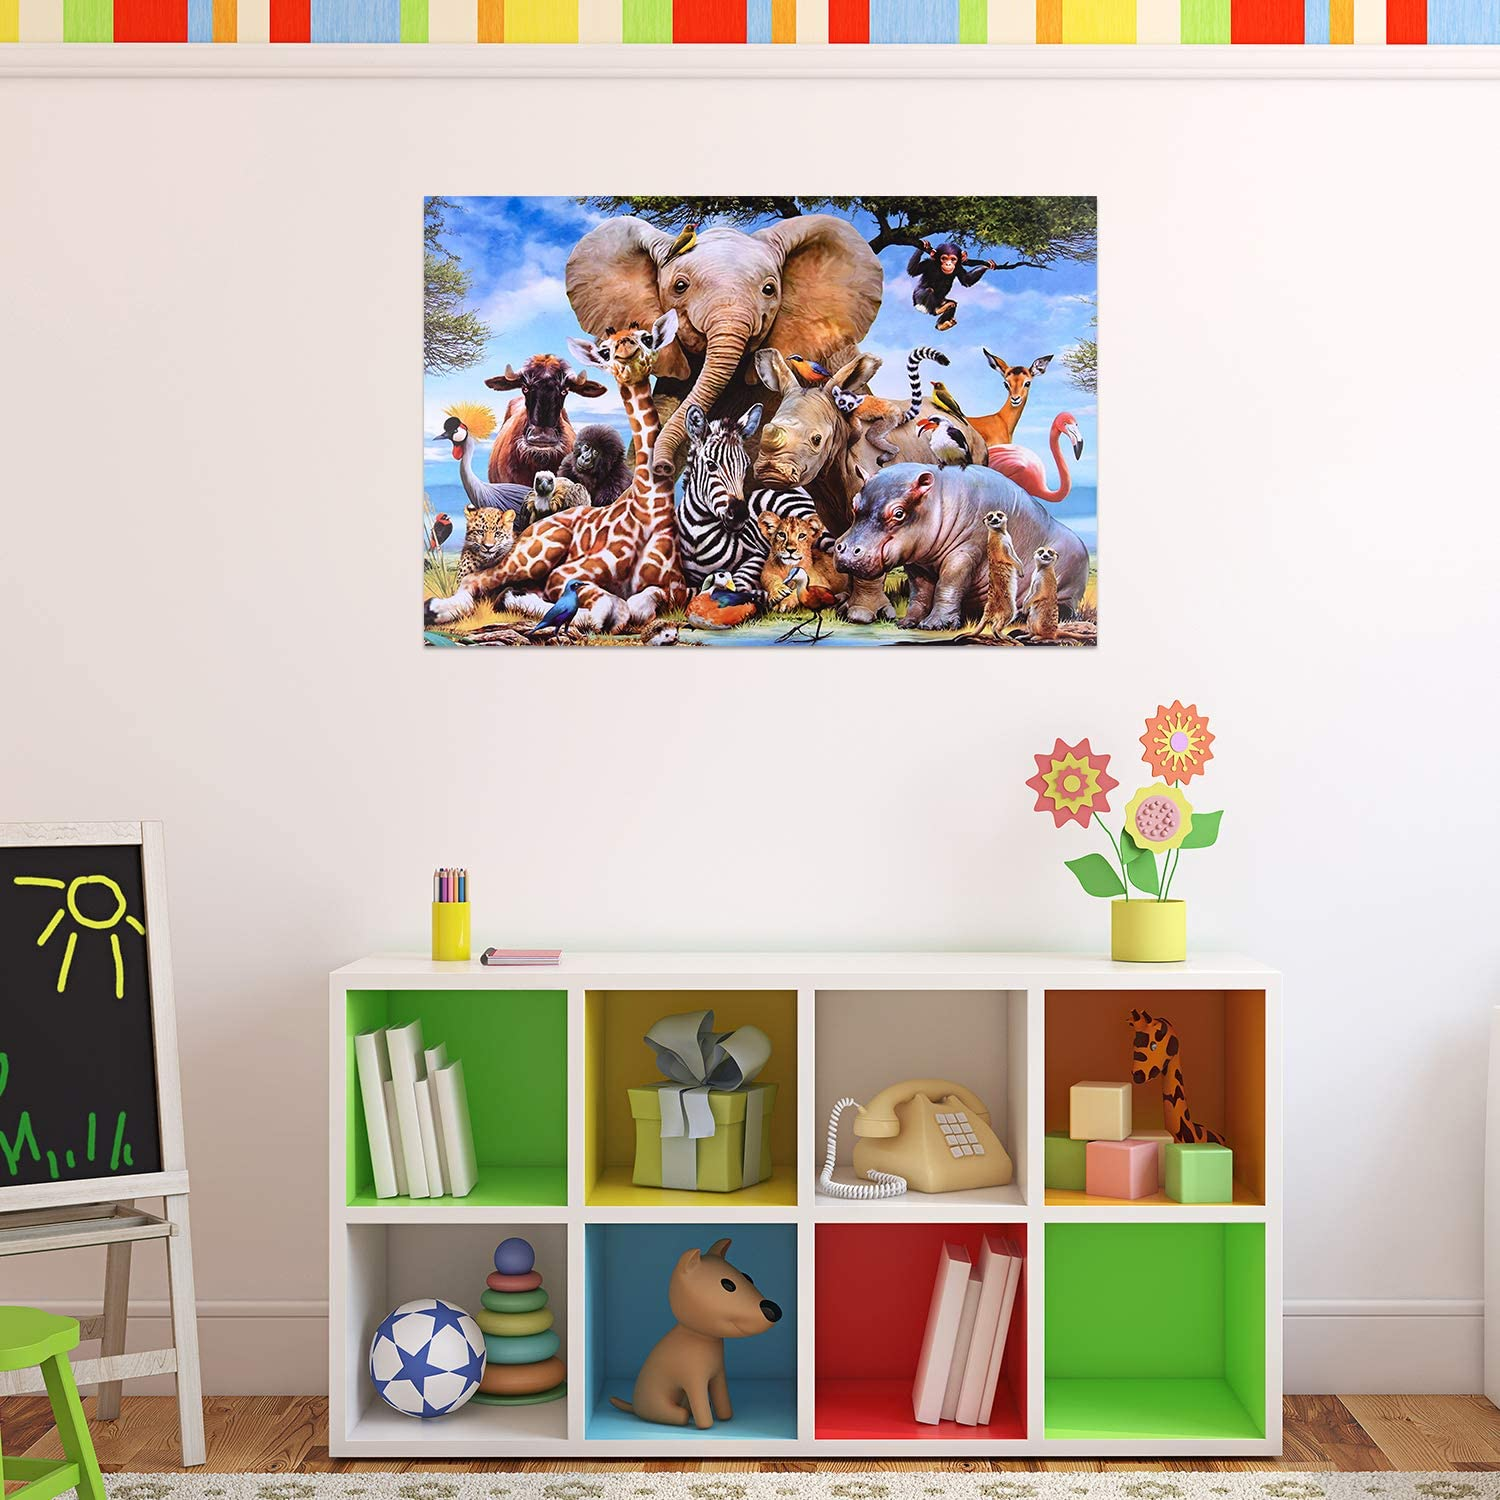 1000 Pieces Jigsaw Puzzles Large Puzzle Elephant Giraffe Jigsaw Puzzle 29.53x19.68 inches Animals Floor Puzzle for Adults and Kids Home Decor